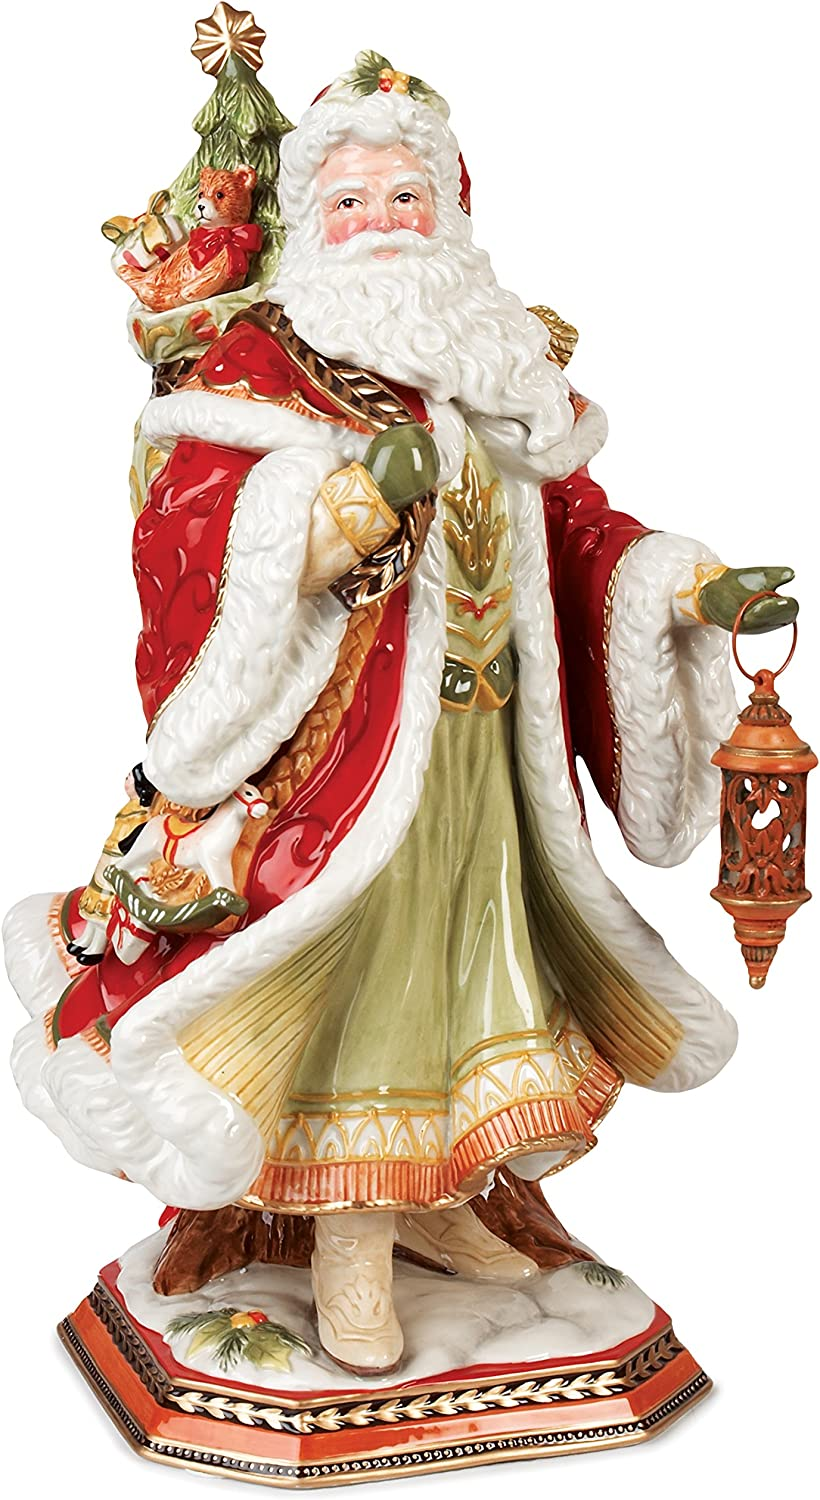 Fitz And Floyd Christmas 2021 Amazon Com Fitz And Floyd Damask Holiday Collectible Figurine 19 Inch Muli Colored Home Kitchen